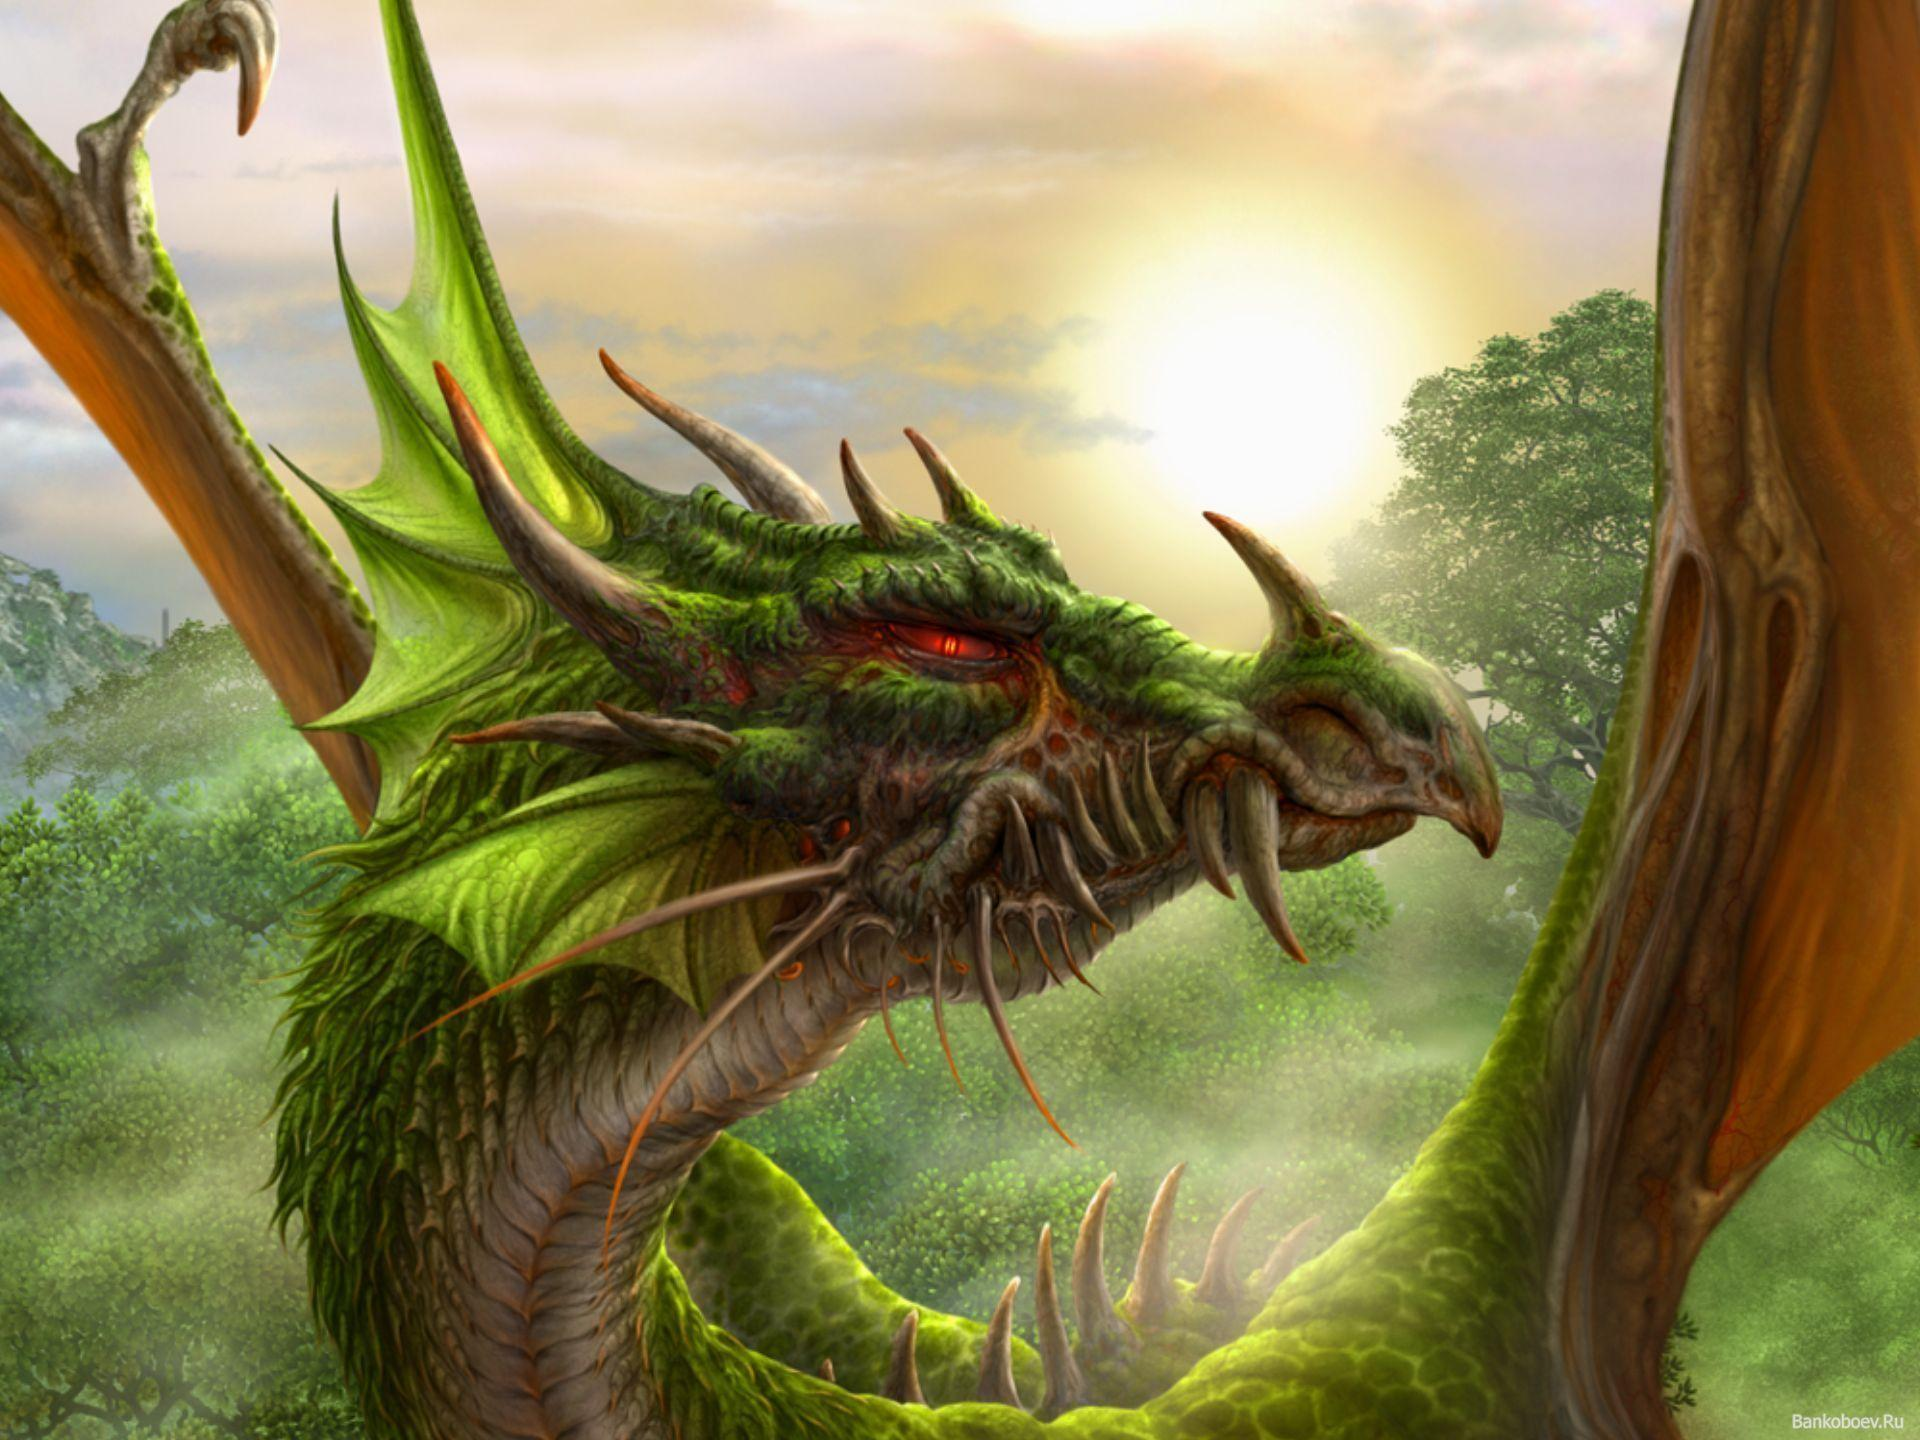 Cool Green Dragon Head Image & Pictures